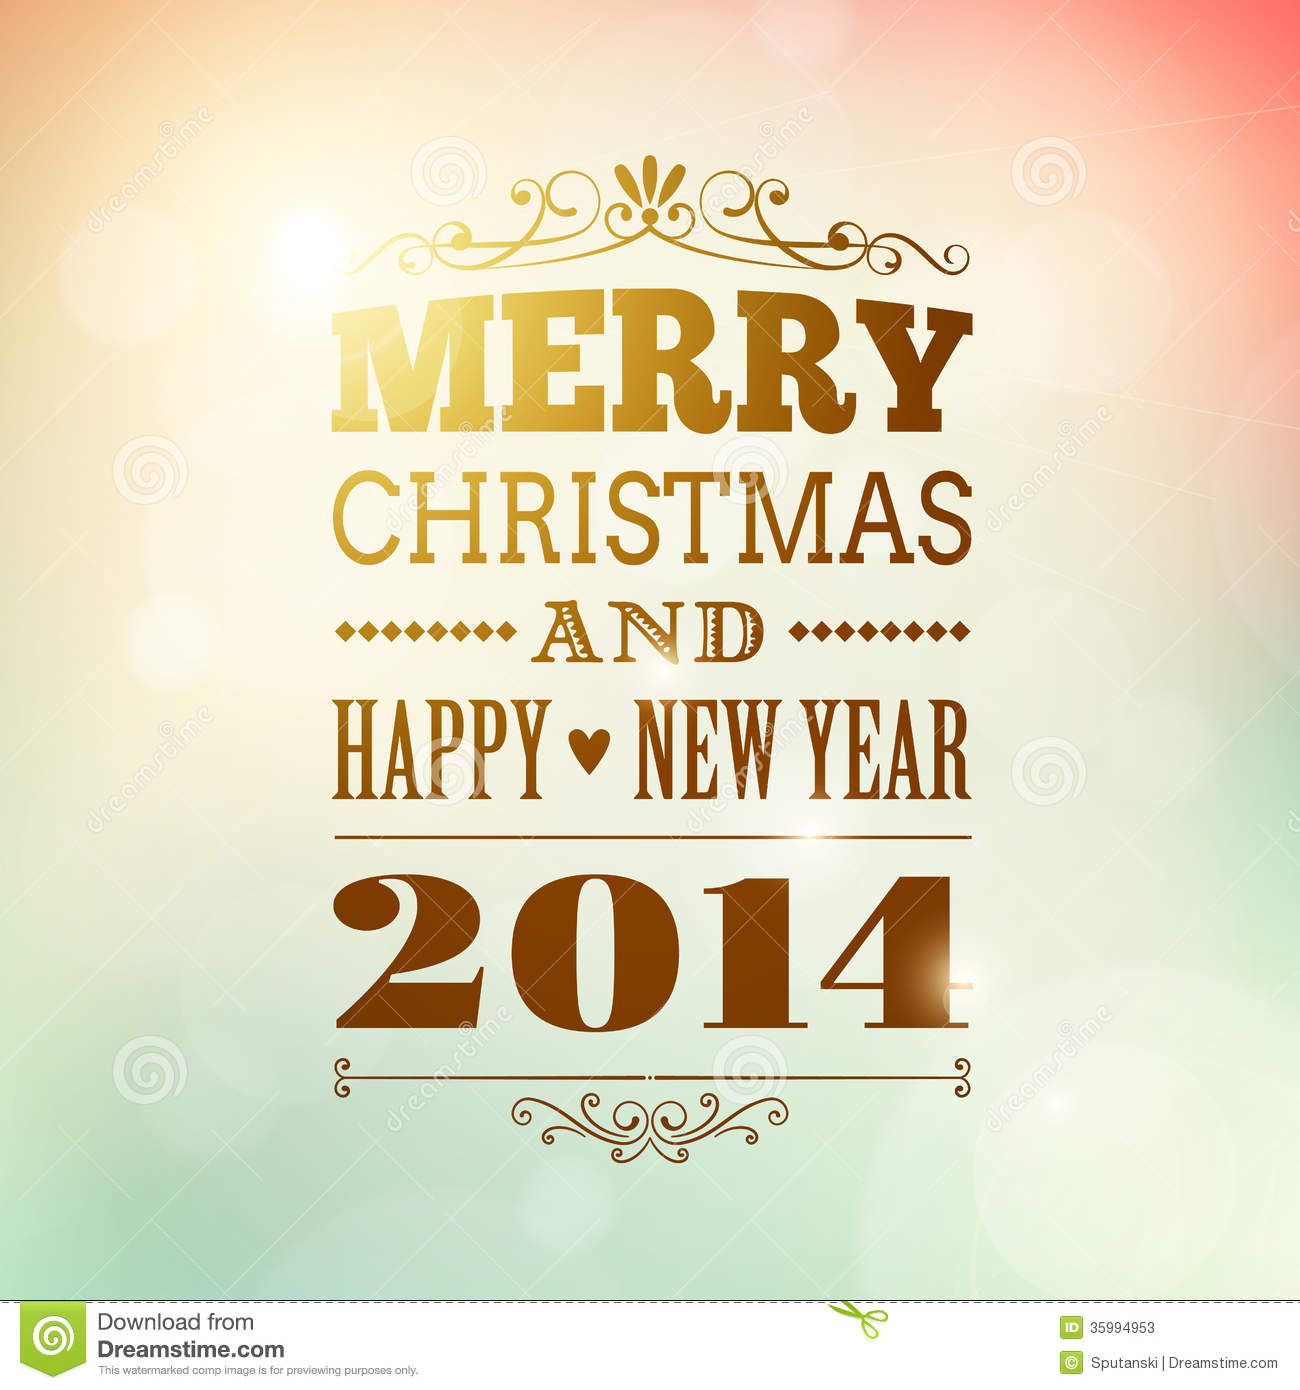 Merry Christmas And Happy New Year 2014 Poster Stock Vector ...